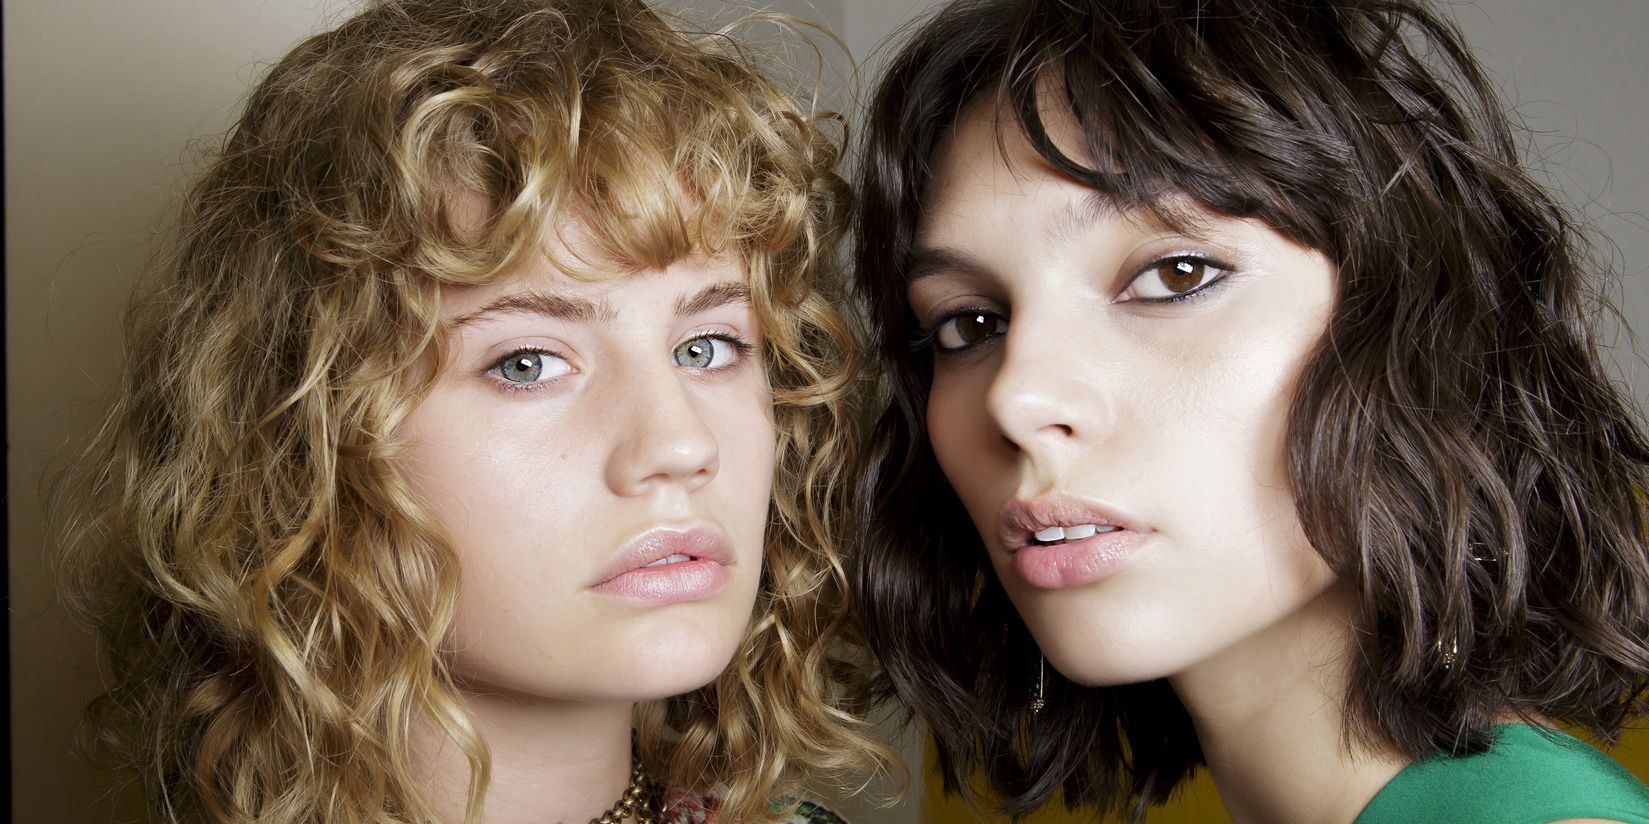 Perm Hair - Everything You Need To Know About Getting A Perm